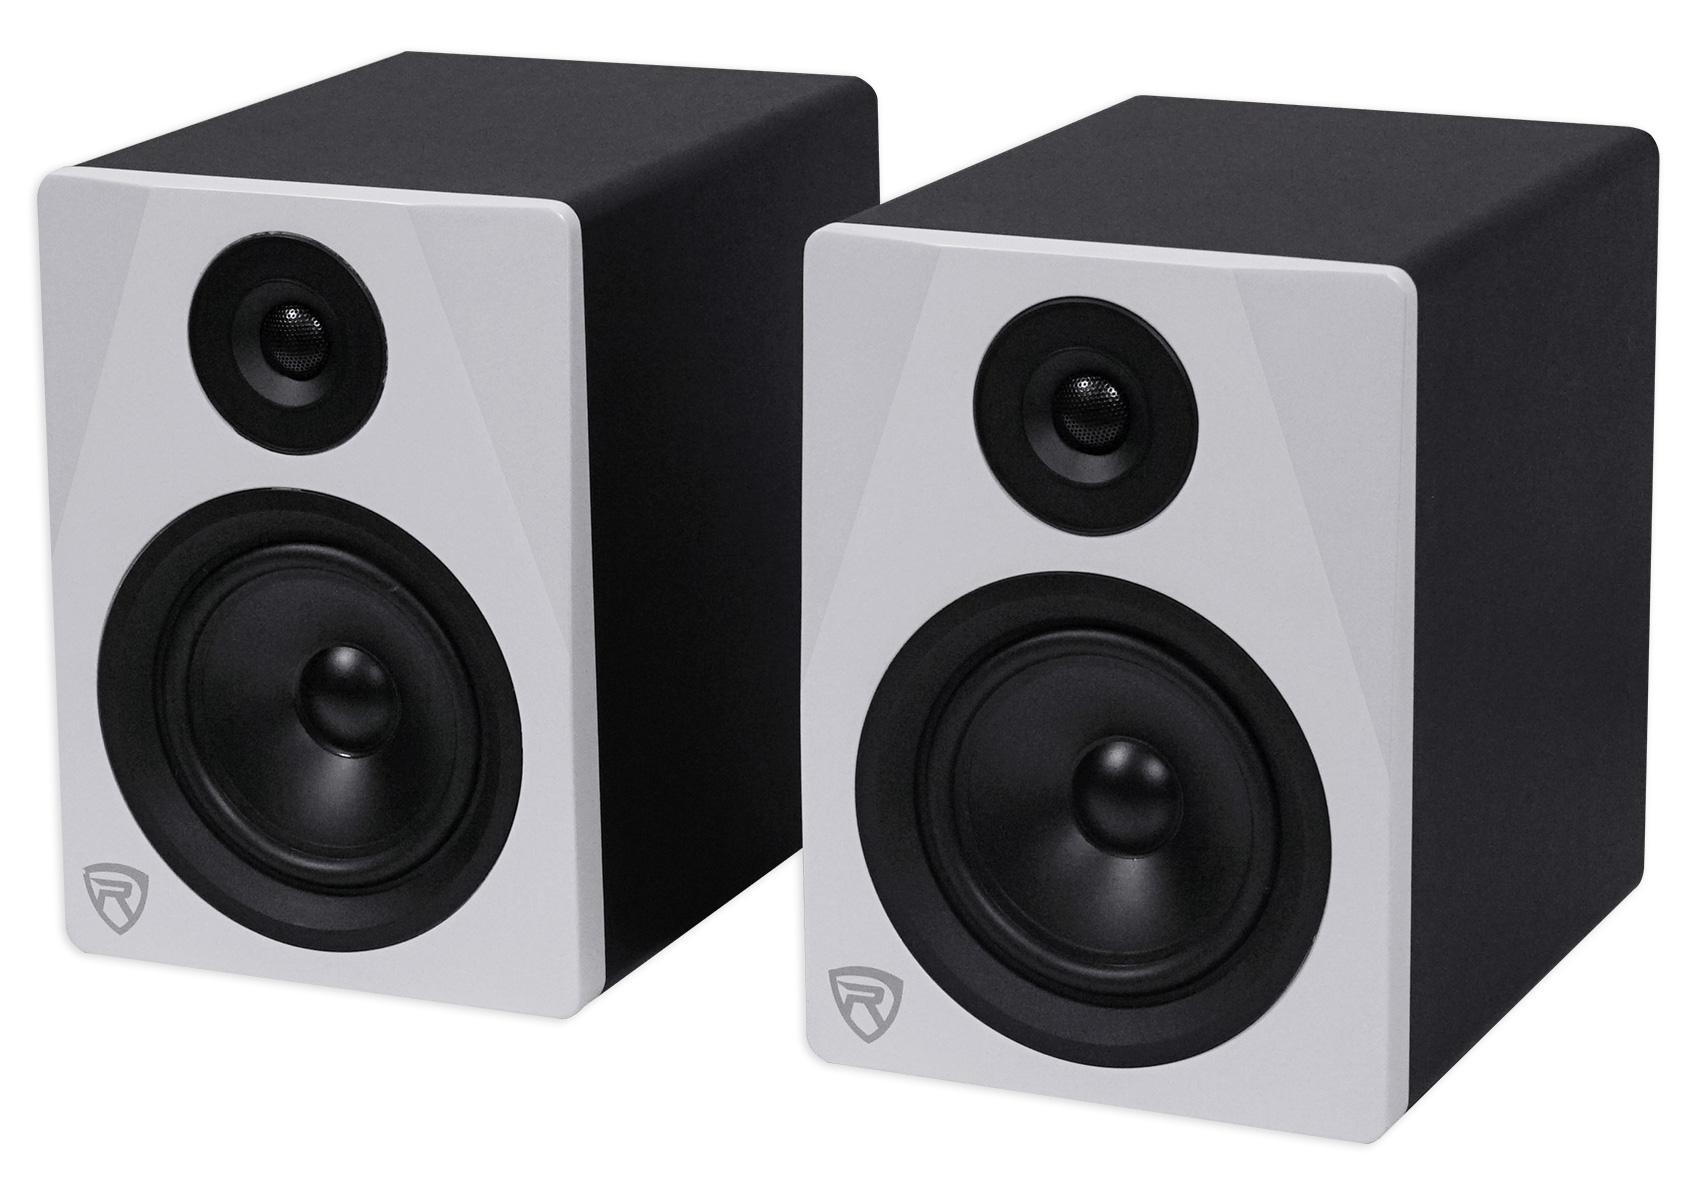 bb211c6361a Amazon.com: Rockville 2-Way 250W Active/Powered USB Studio Monitor ...